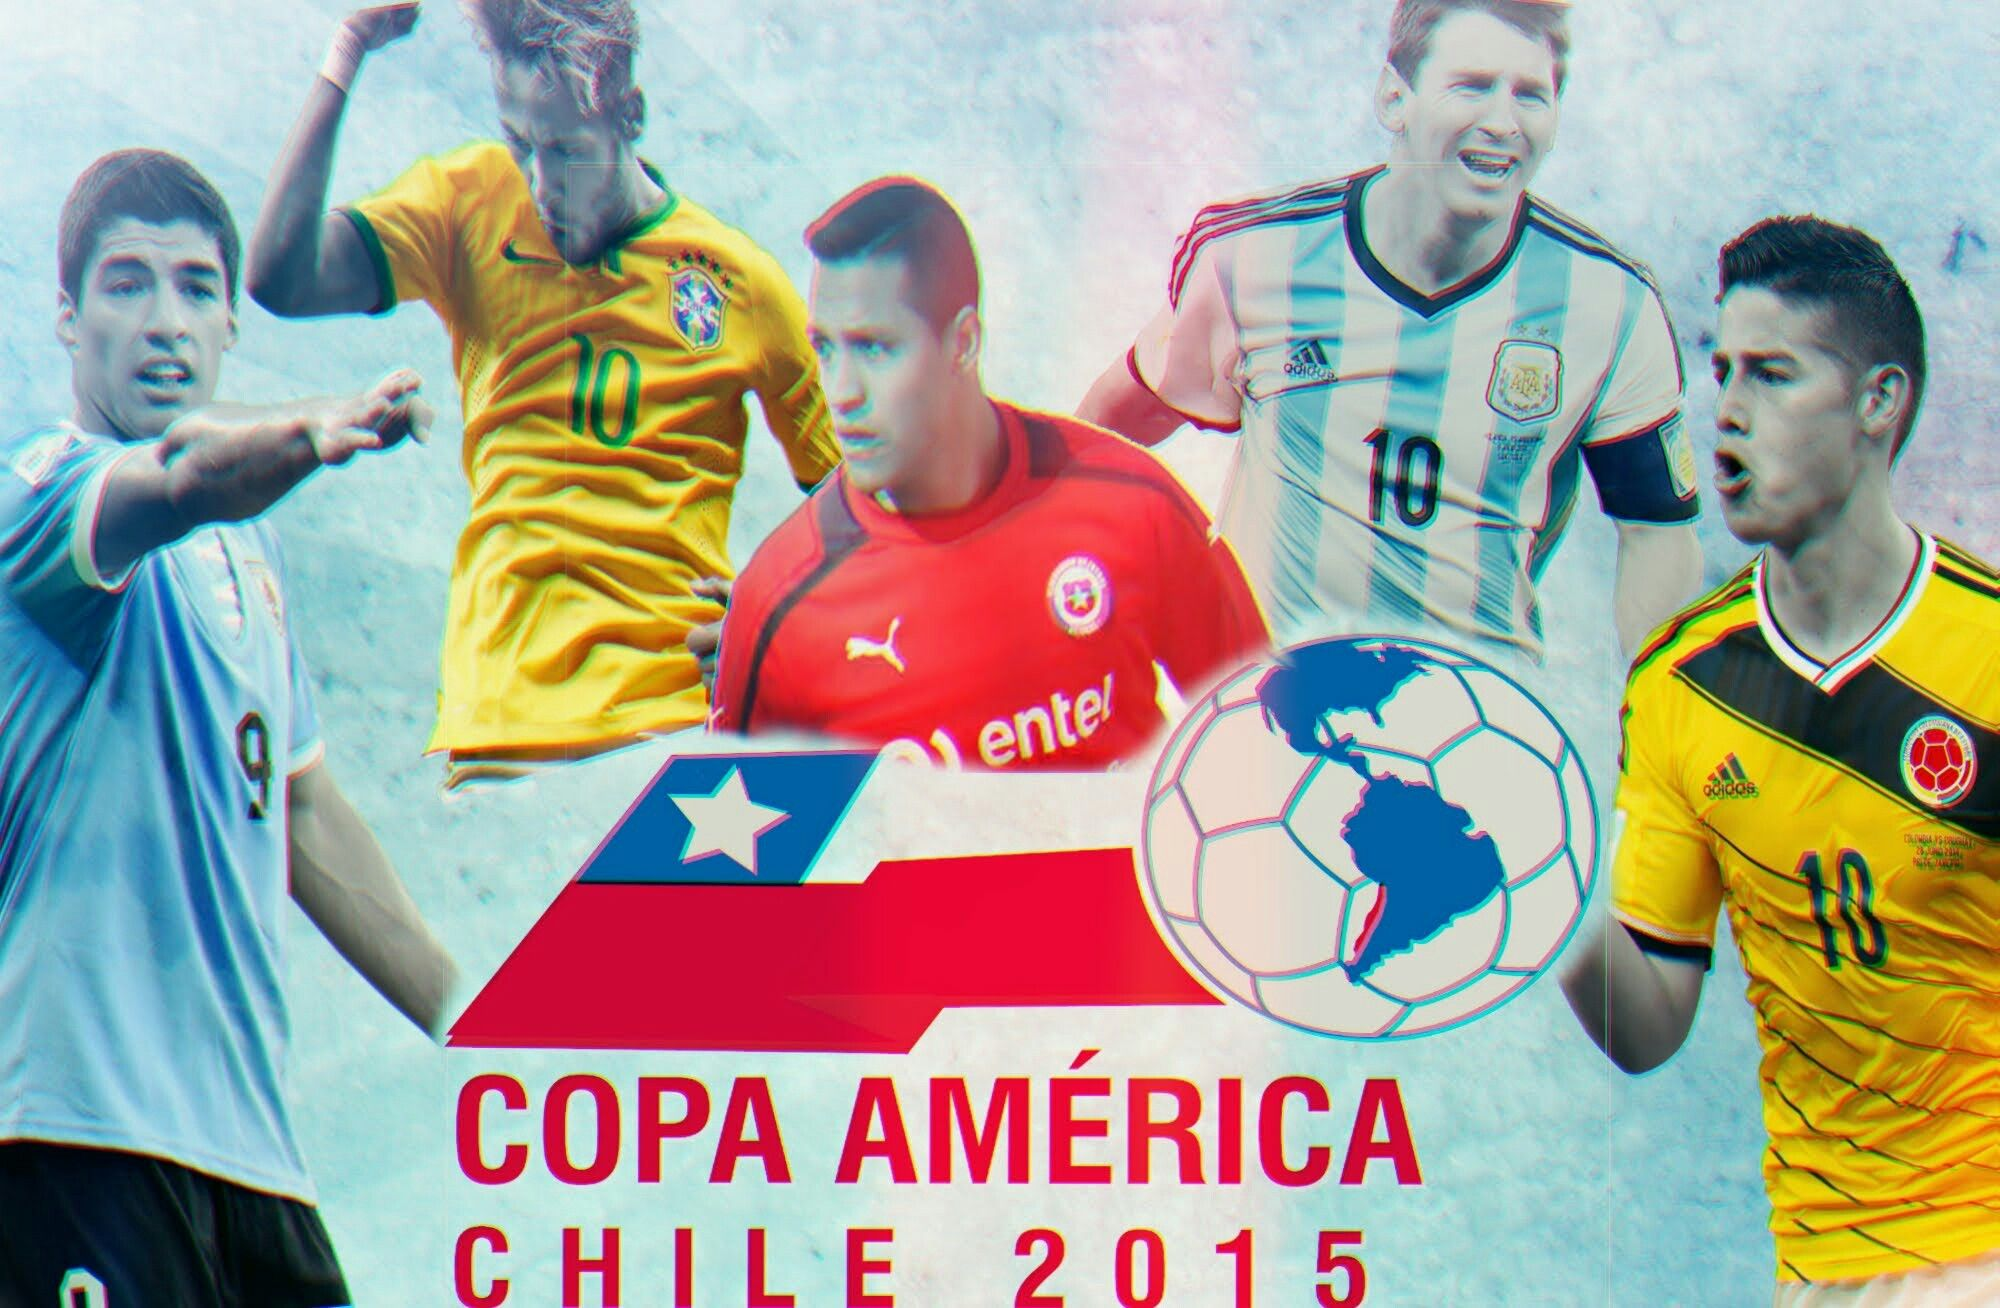 2015 Copa America poster. Rugby world cup, Baseball